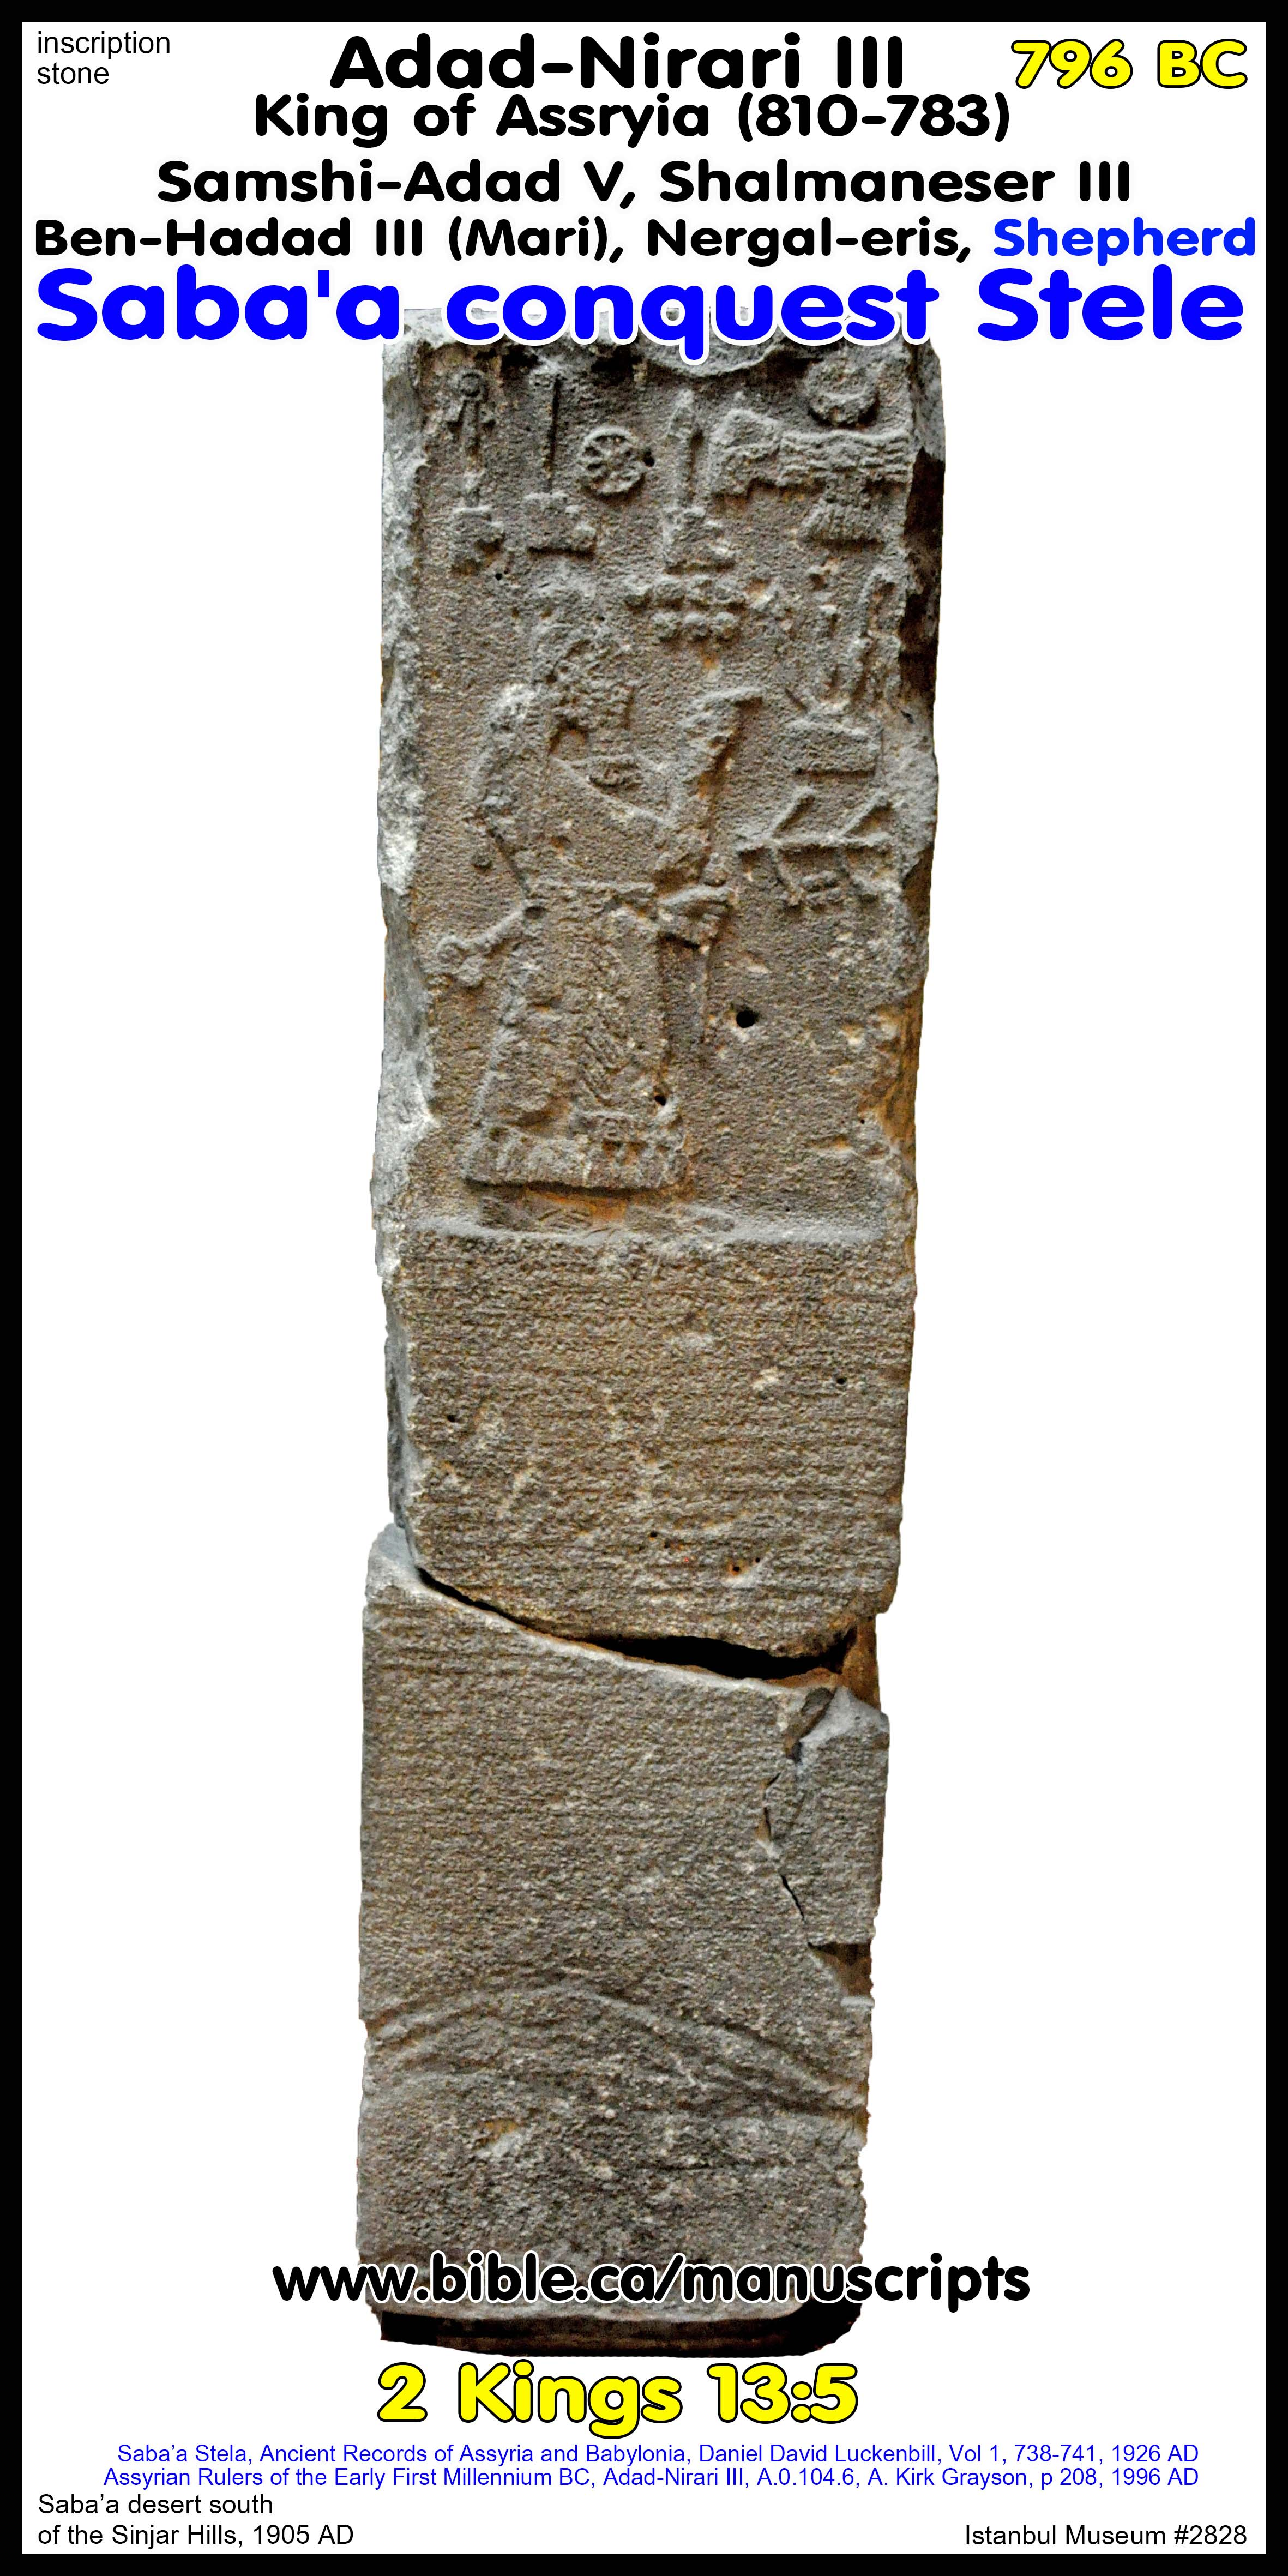 804 BC: List of Assyrian Kings in the Bible  door sill of